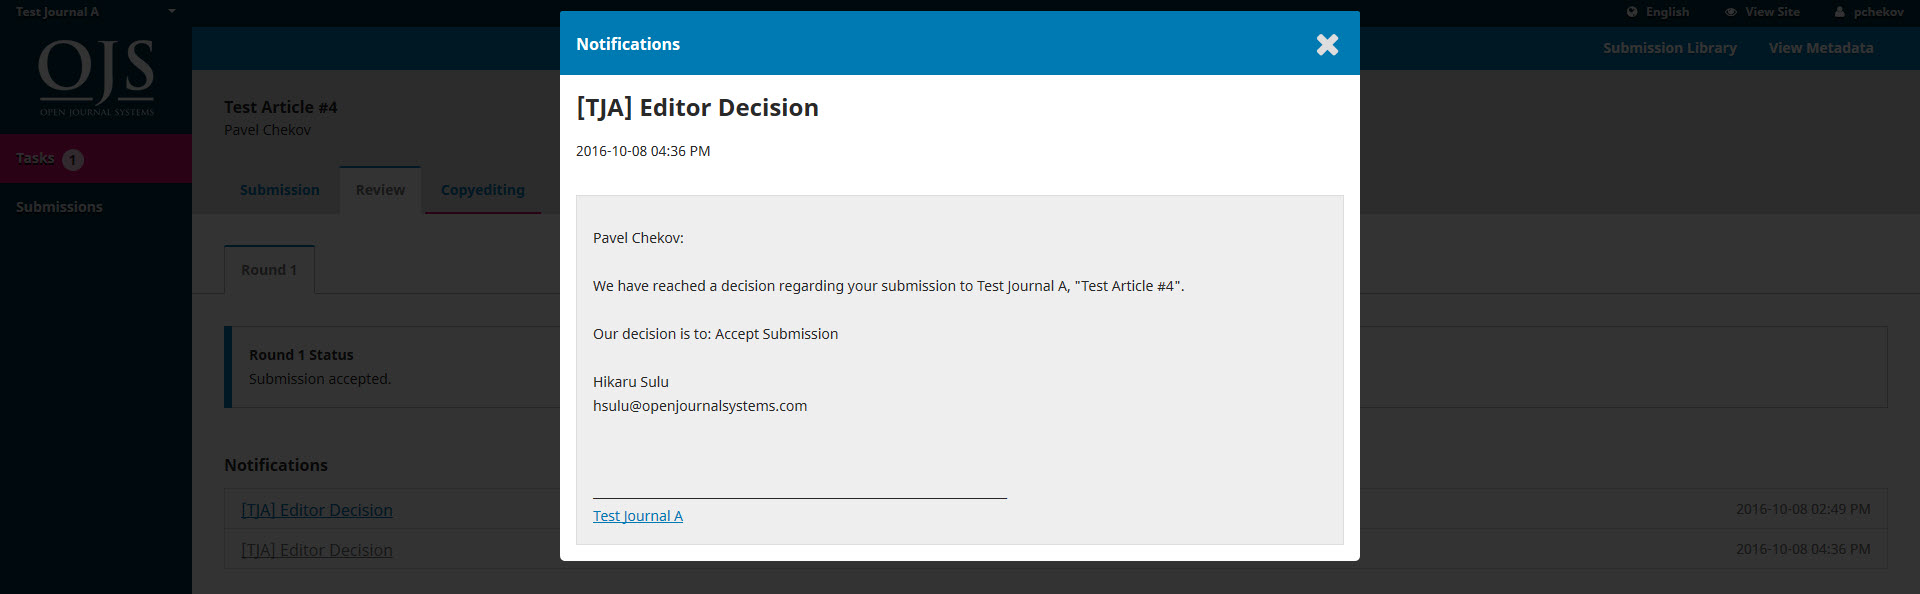 ojs3-author-responding-revisions-accepted-notifications